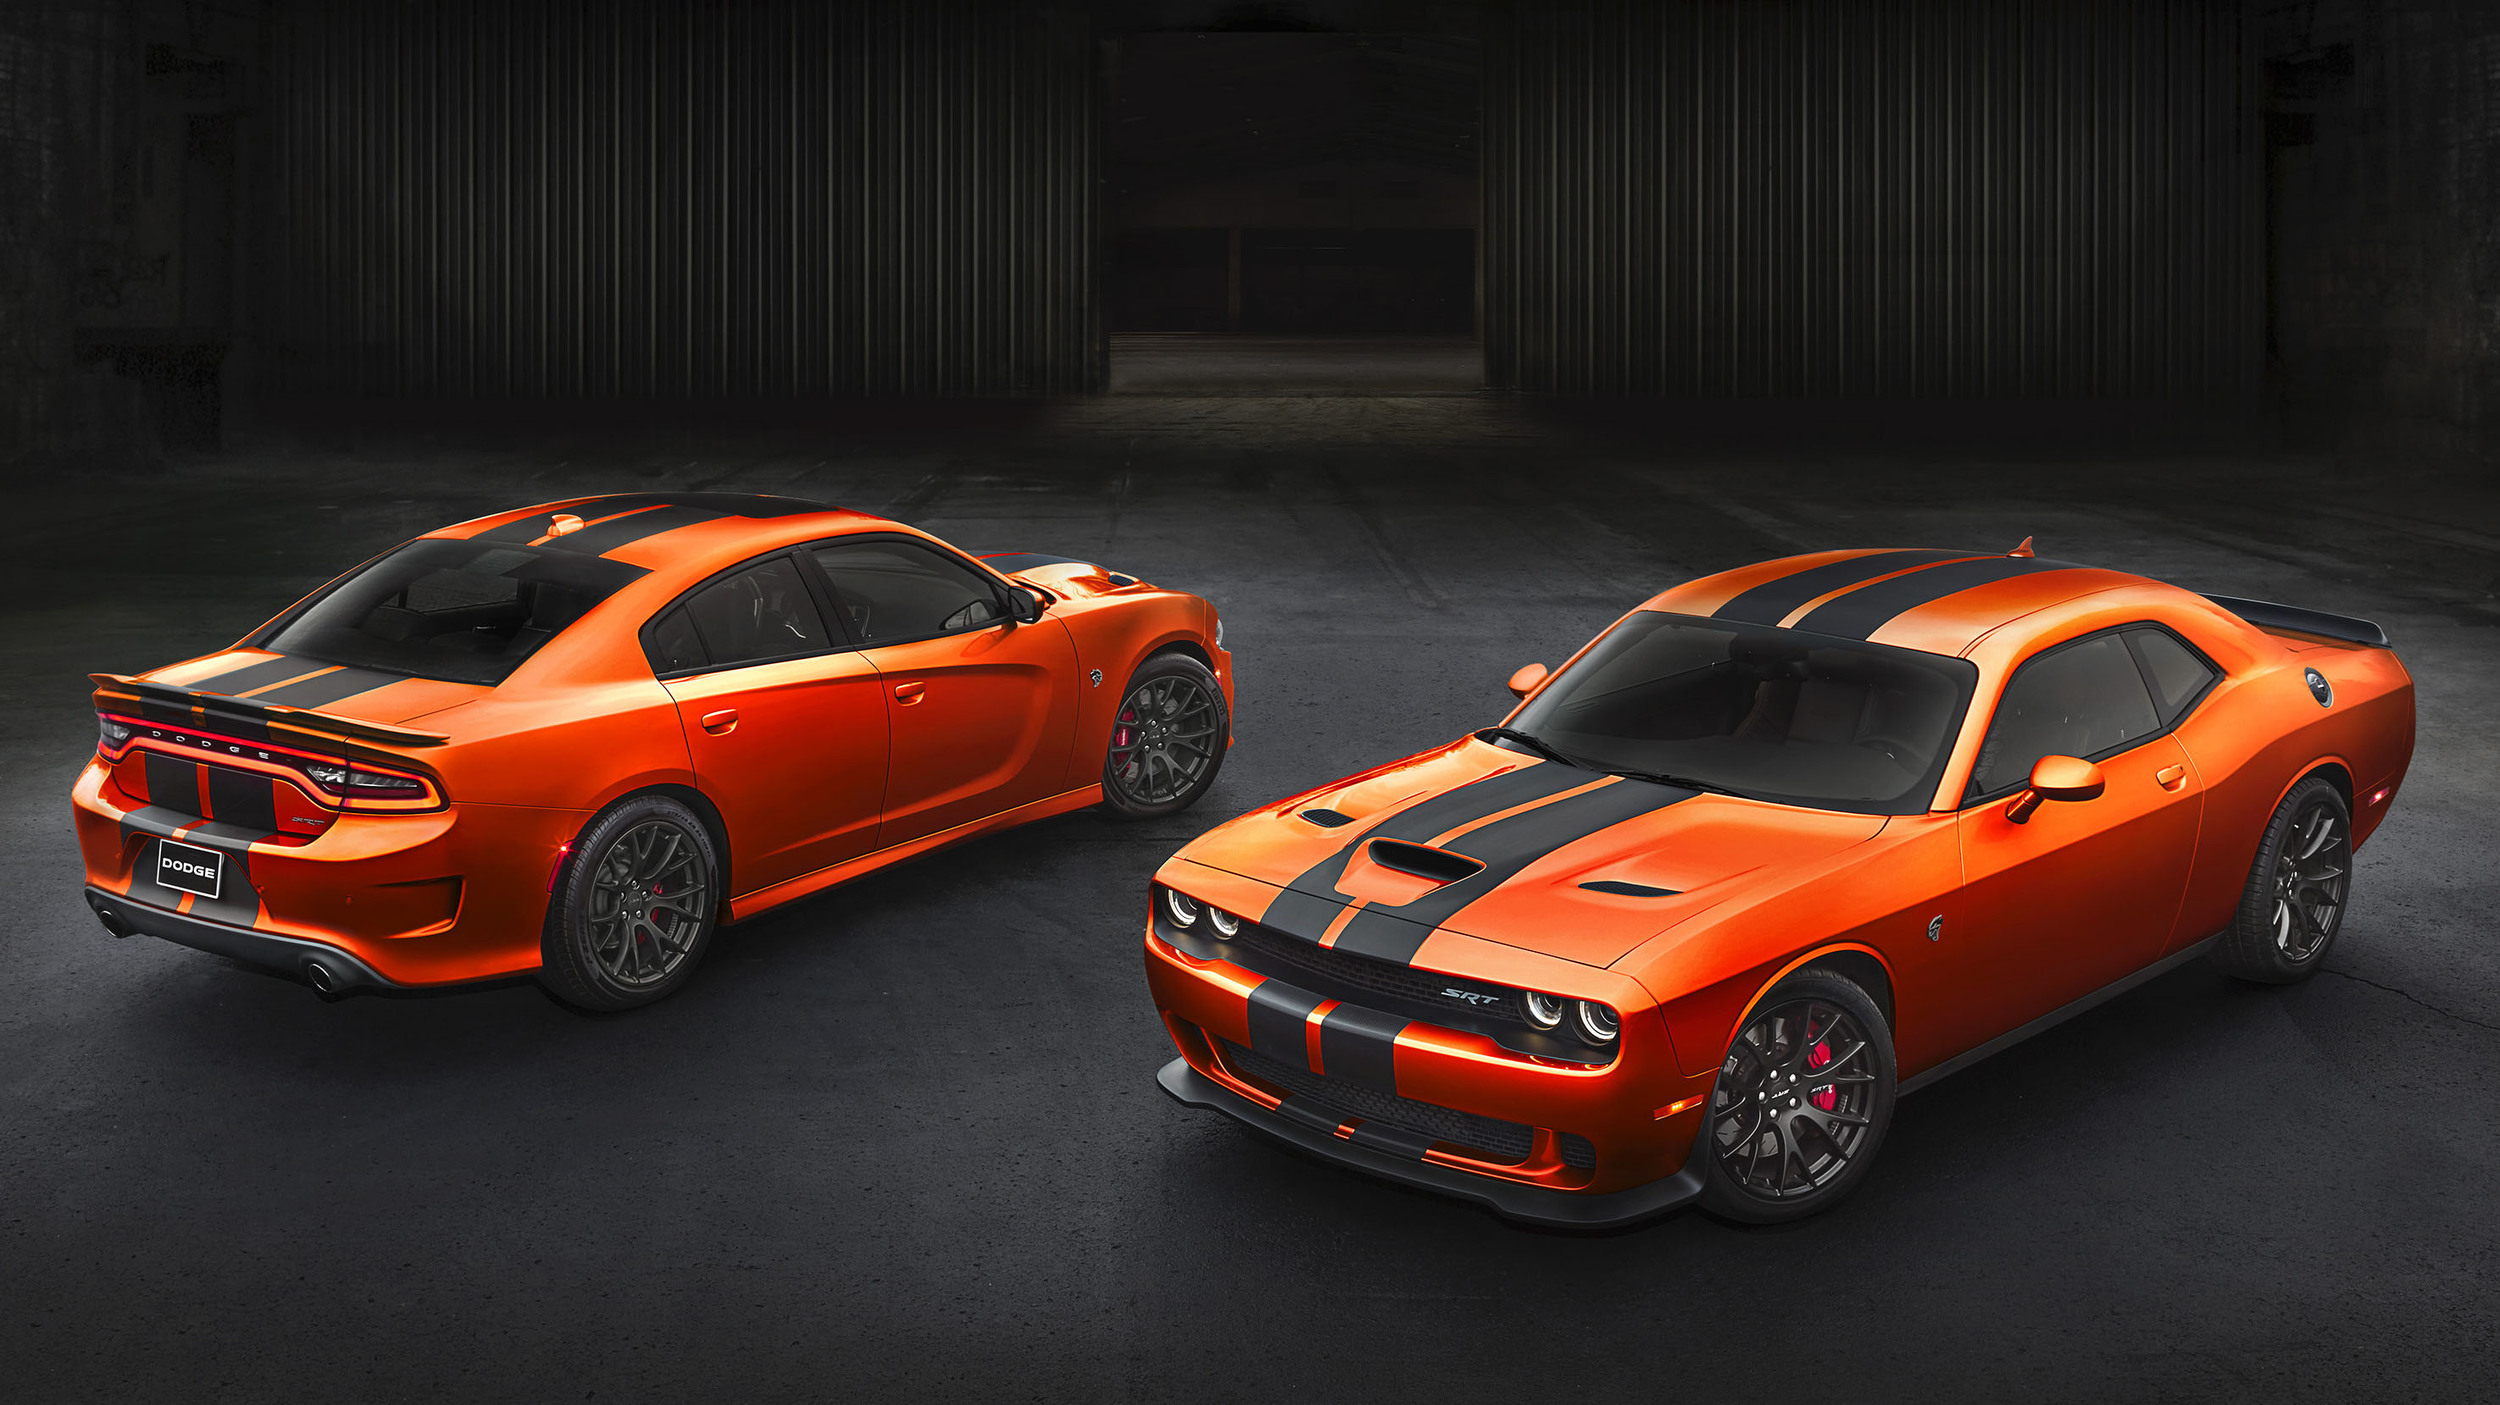 2016 Dodge Charger and Challenger SRT Hellcat | Dodge